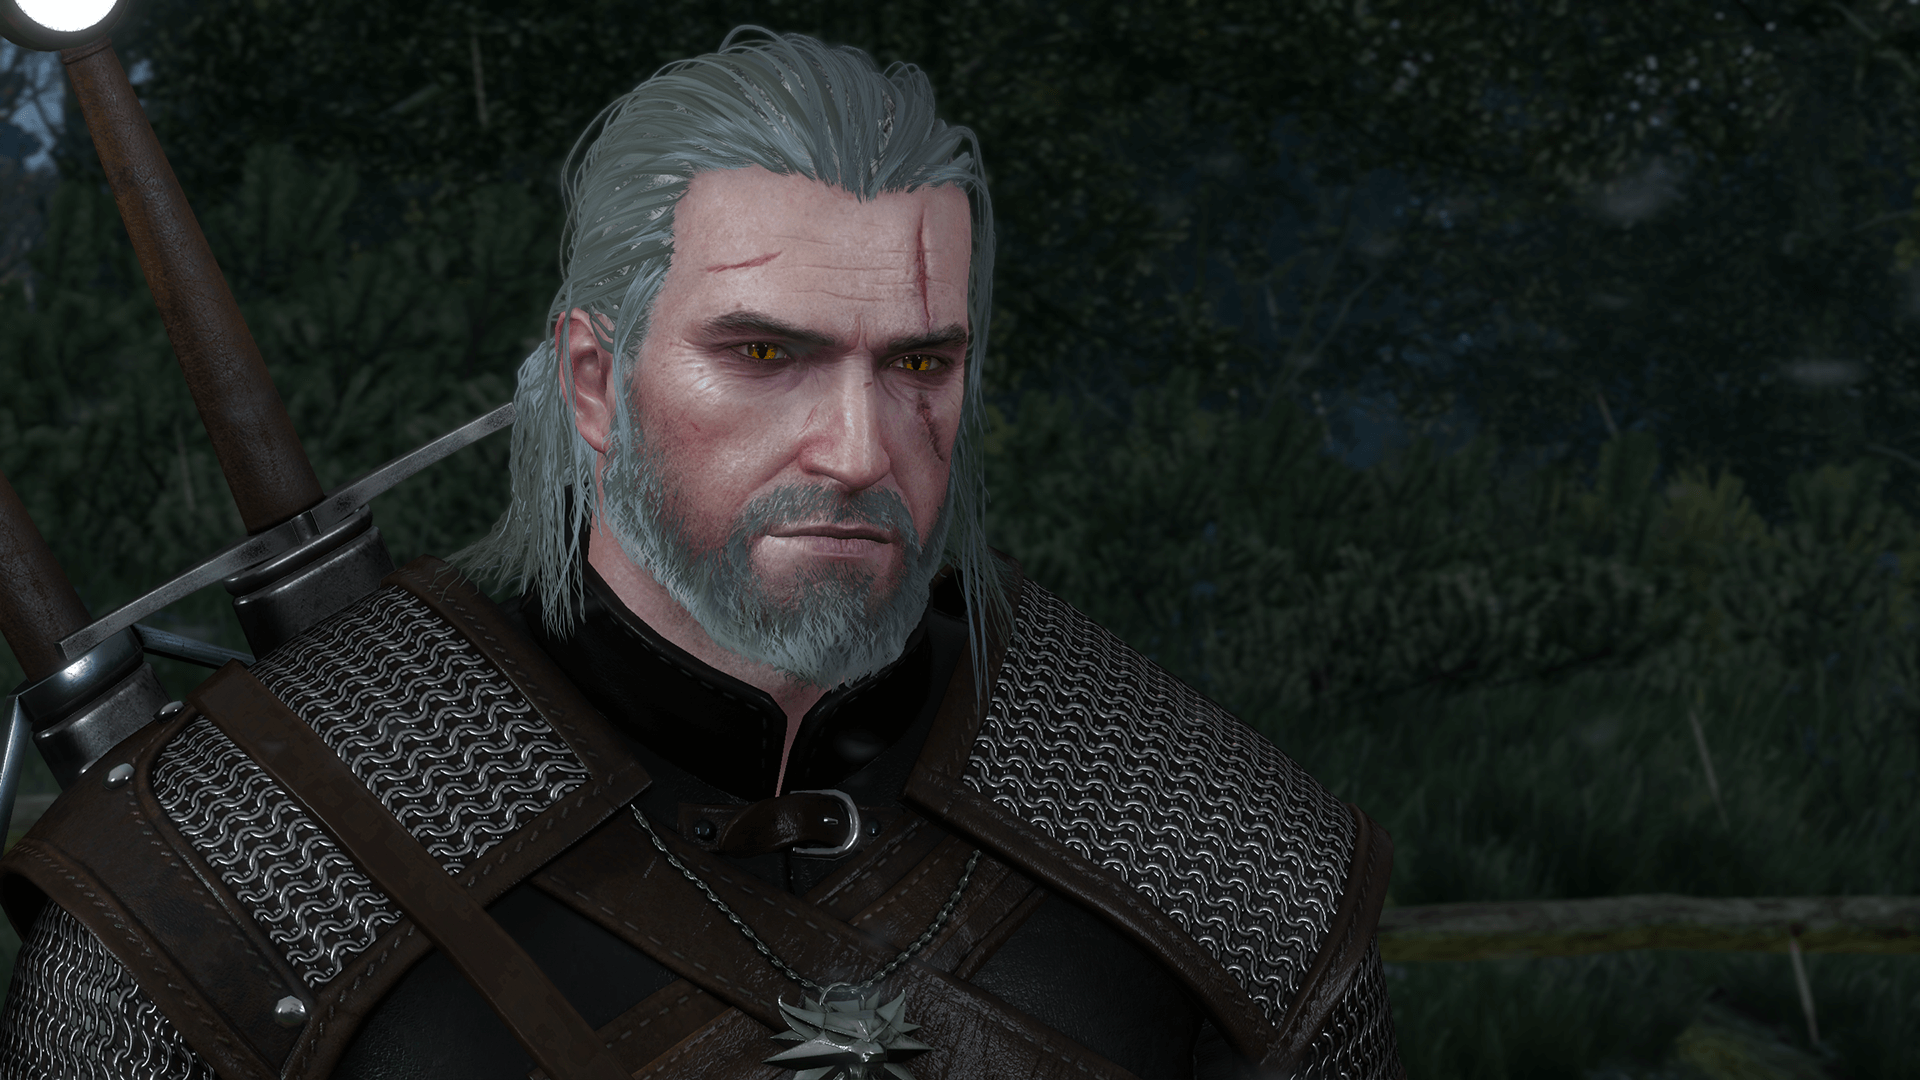 Speedrun Fast: Witcher 3